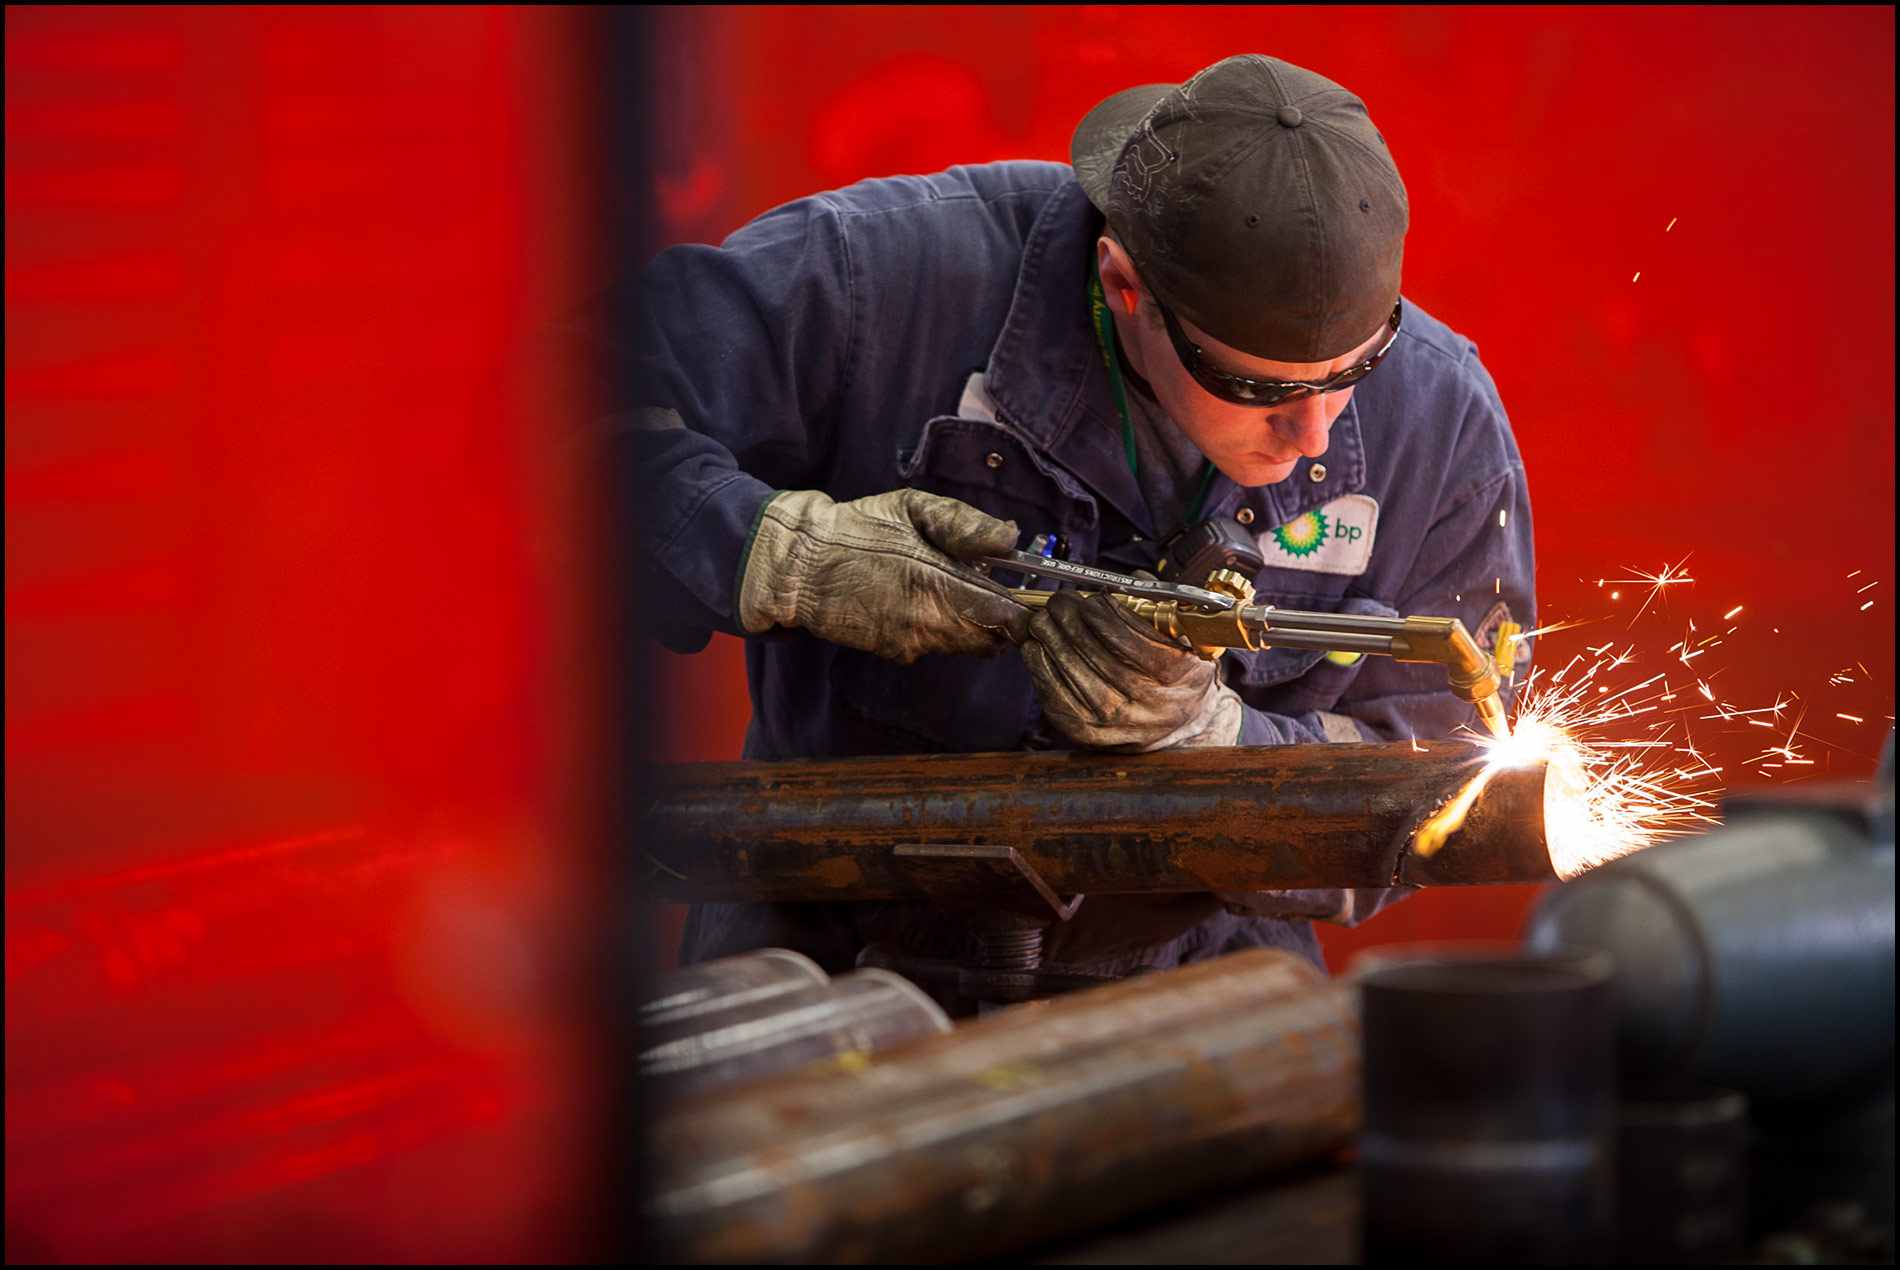 A welder uses a cutting torch behind red safety barriers in a refinery fabrication shop